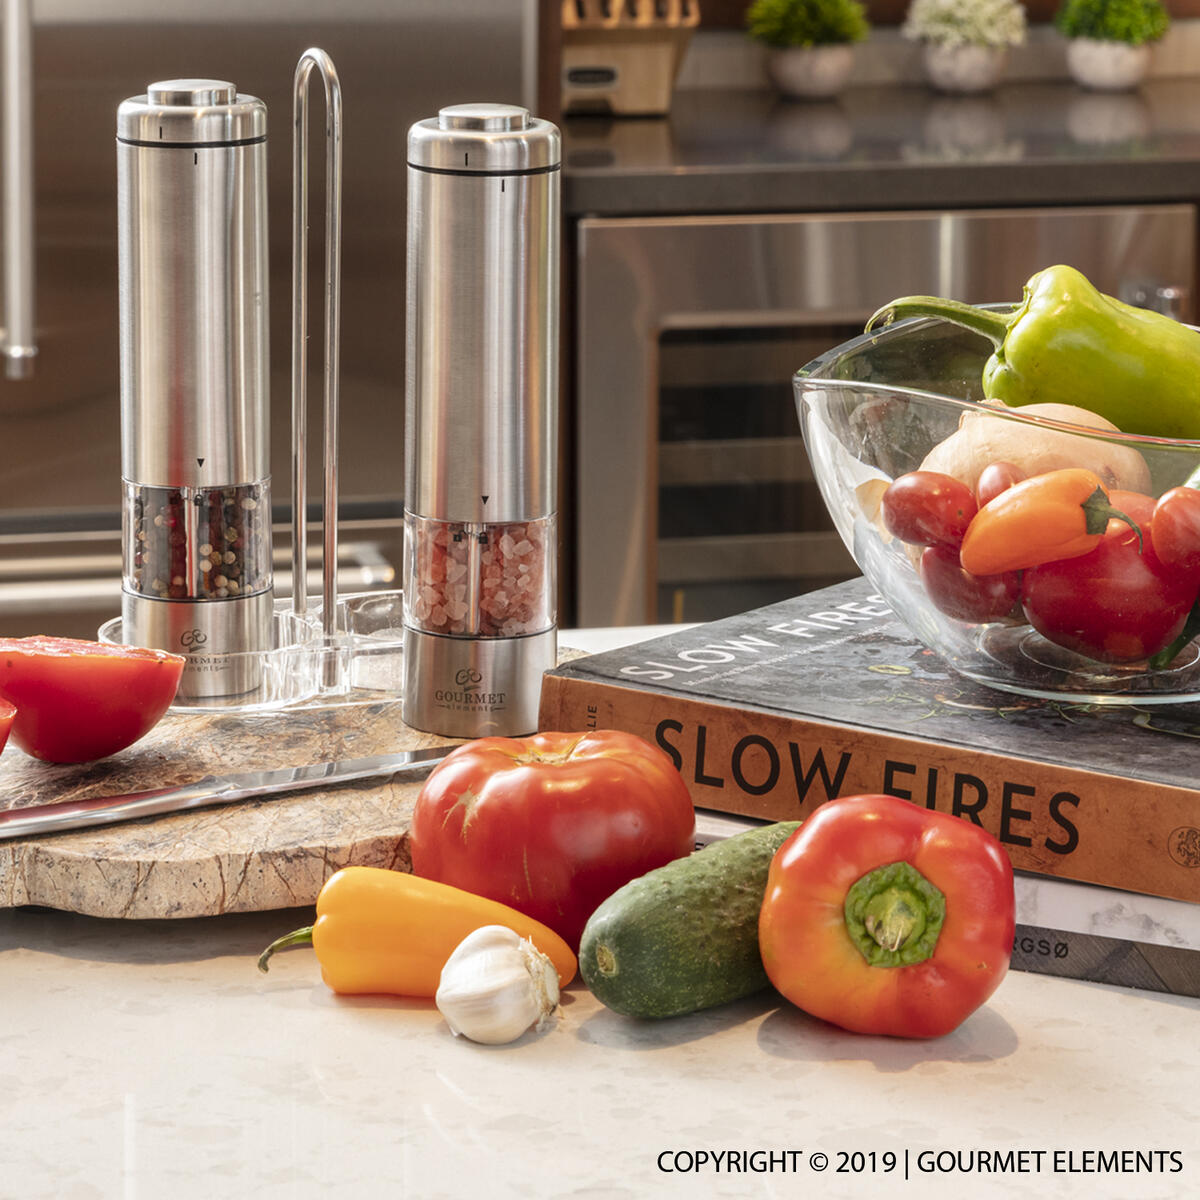 Electric Salt and Pepper Grinder Set by Gourmet Elements | 2 Refillable, Battery Operated, Stainless Steel Mills